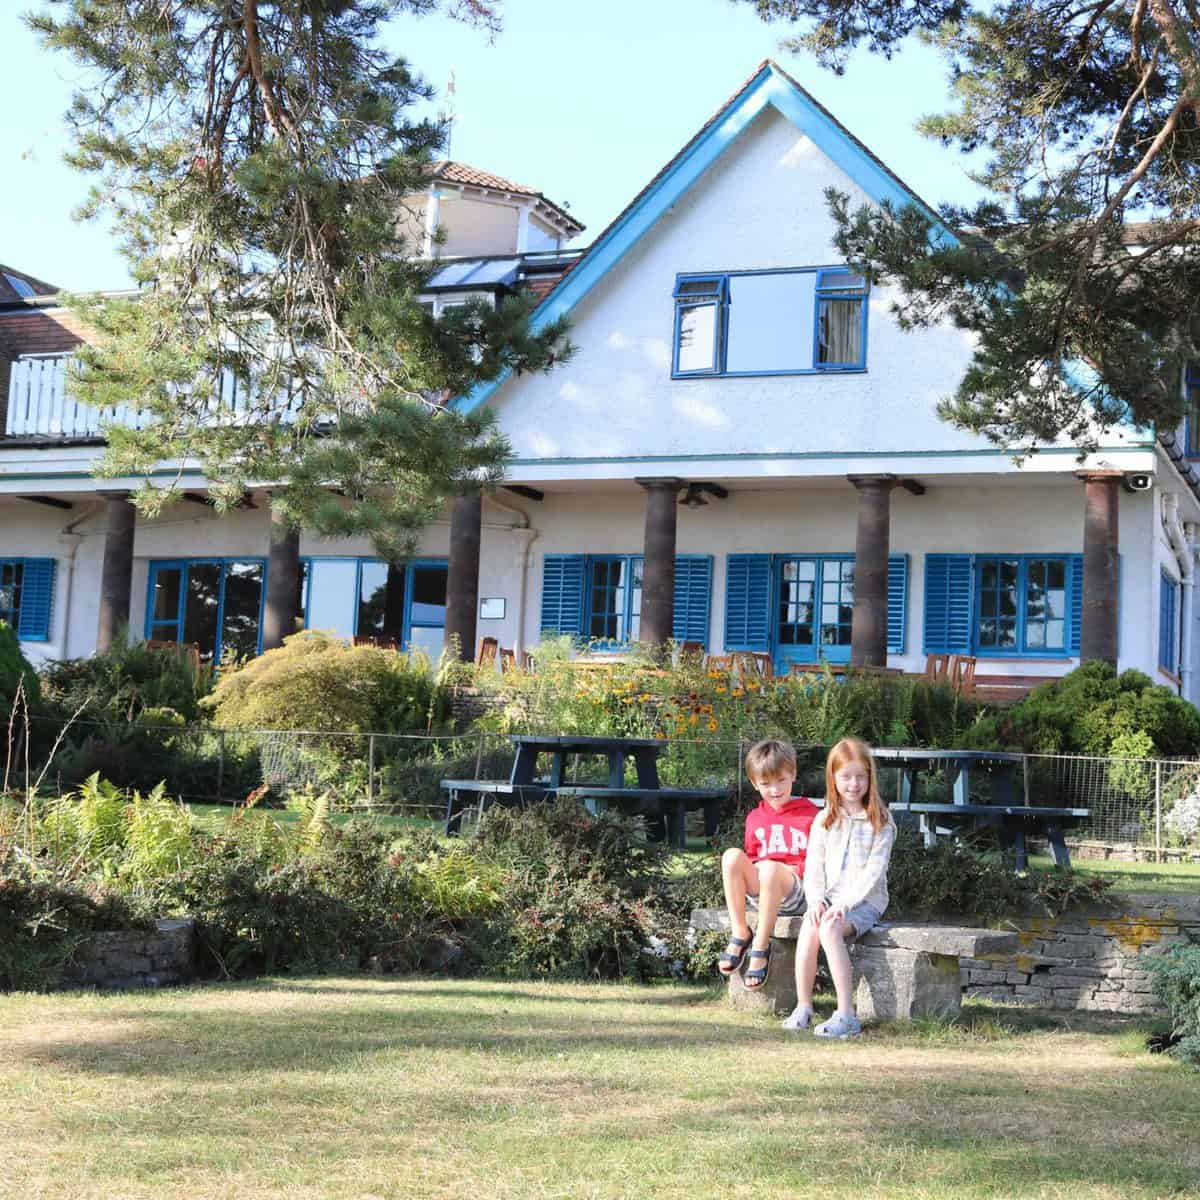 A Family Weekend at Knoll House Hotel Dorset - Grounds